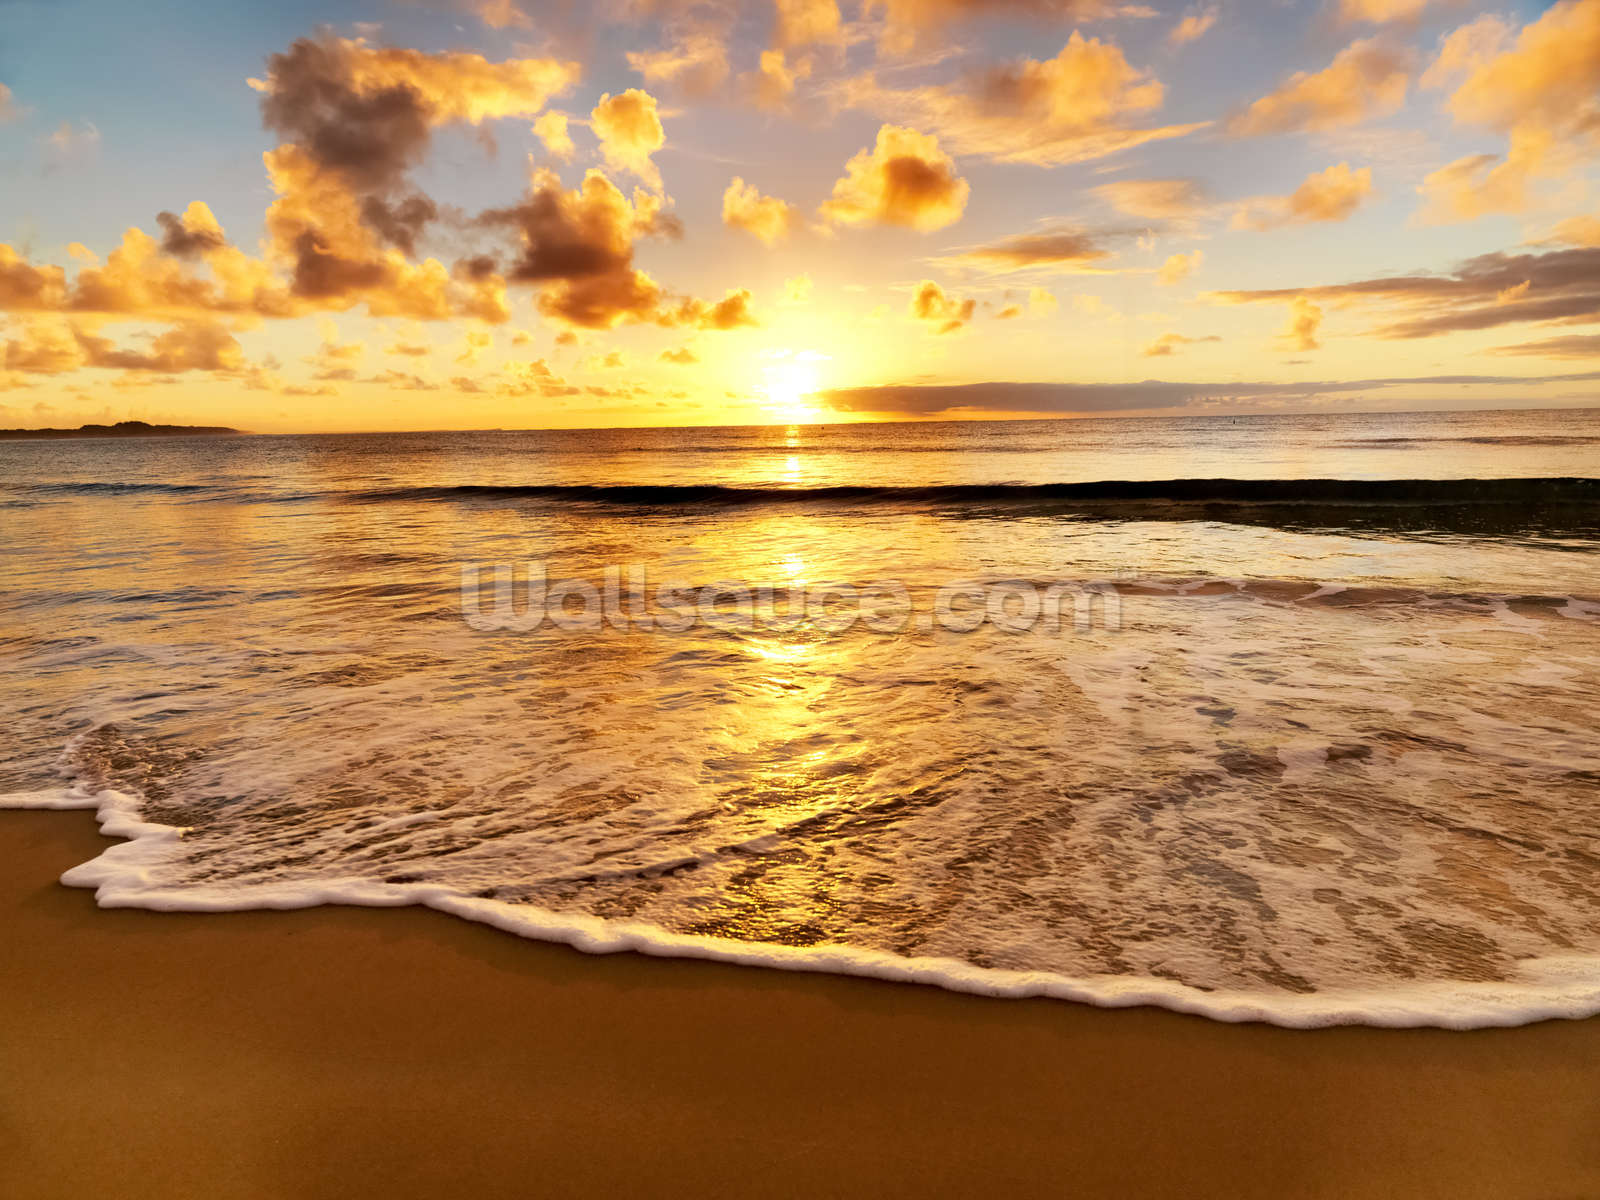 Beach sunset wallpaper wall mural wallsauce usa for Beach sunset mural